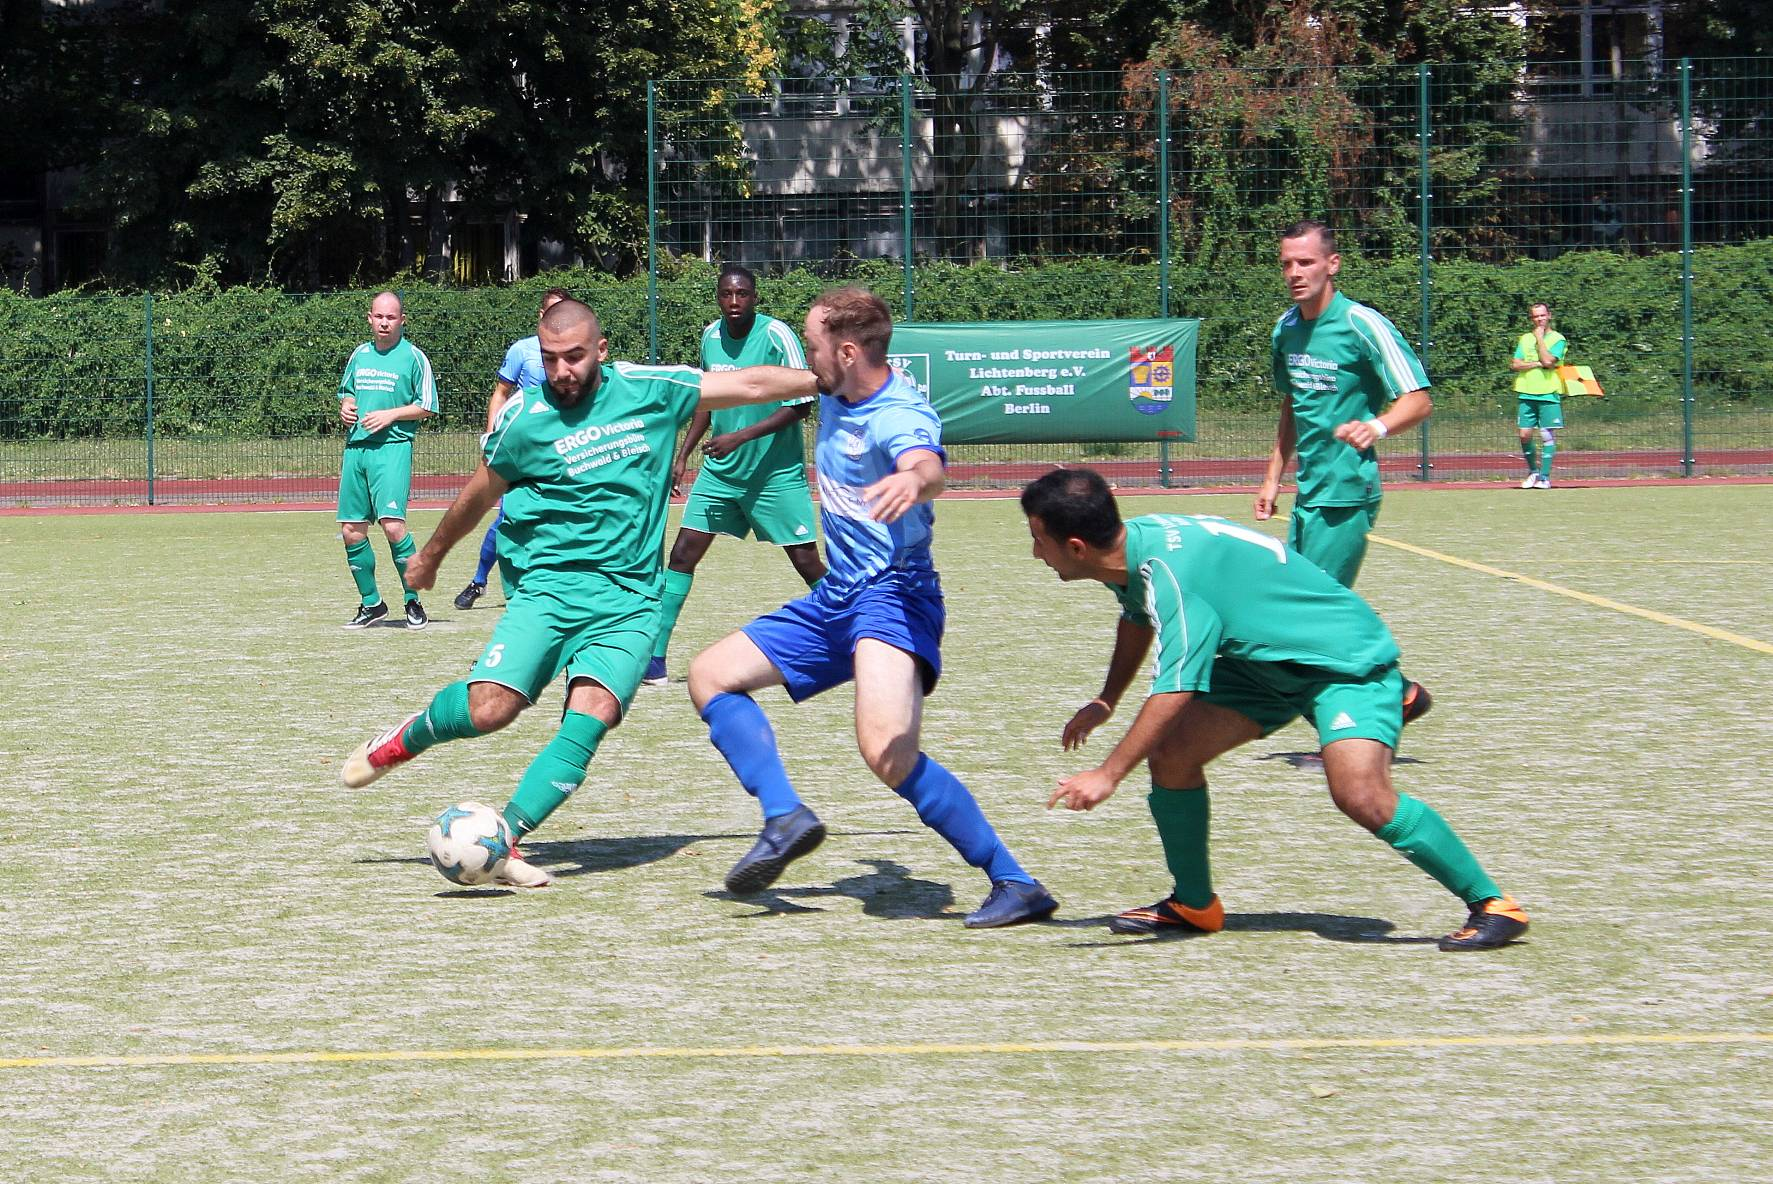 TSV vs. Tegel 01